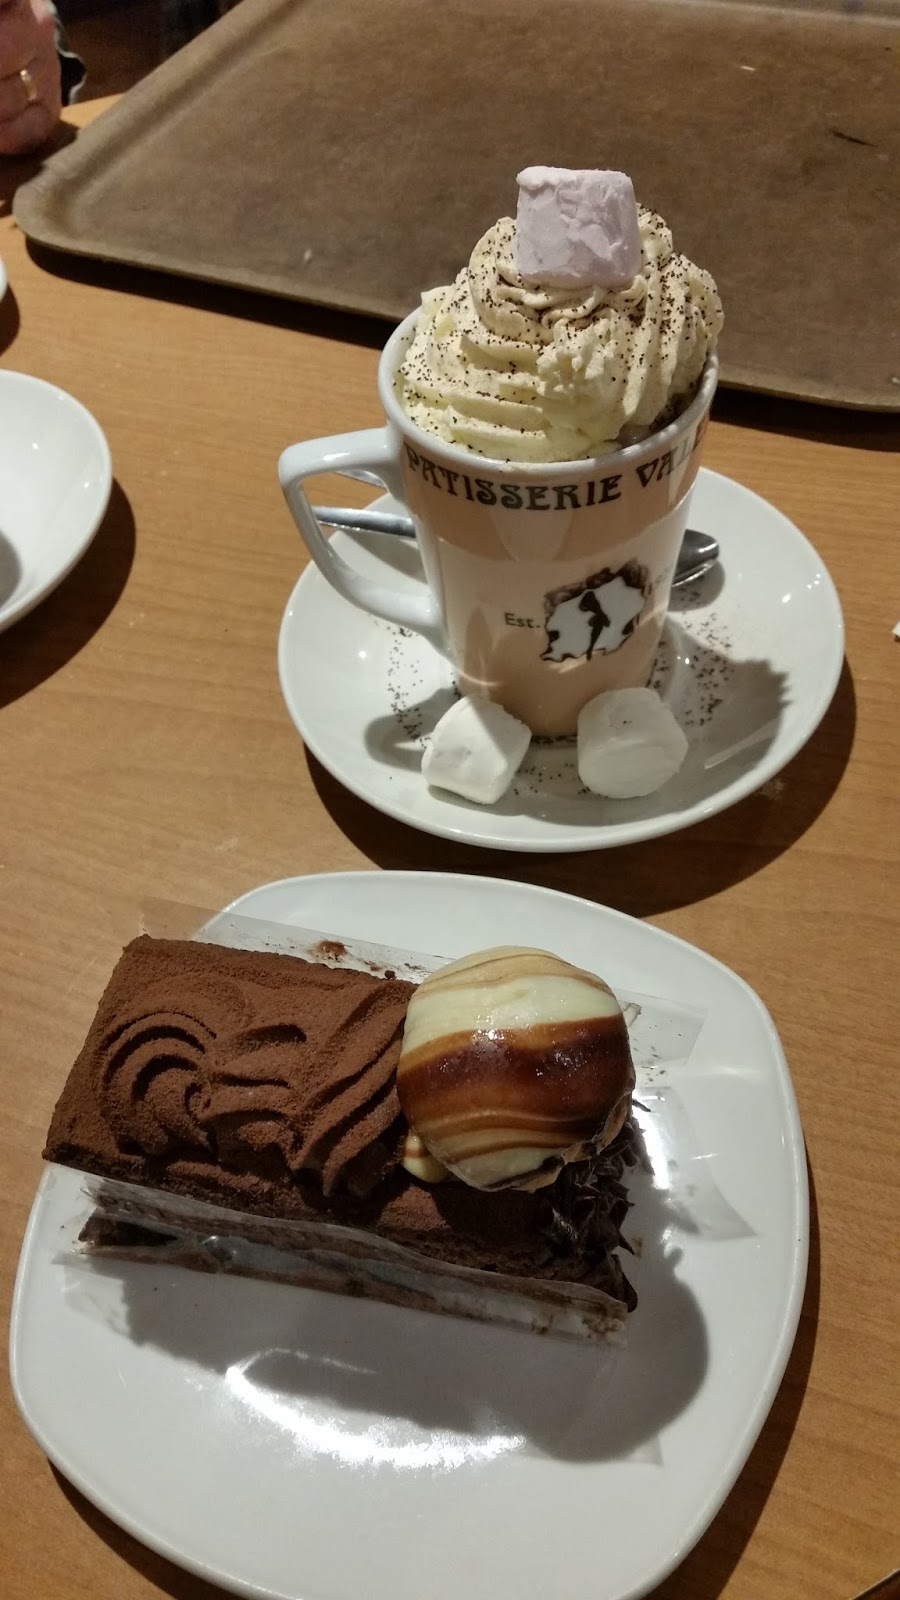 Patisserie Valerie, hot chocolate, marshmallows, chocolate cake, profiterole